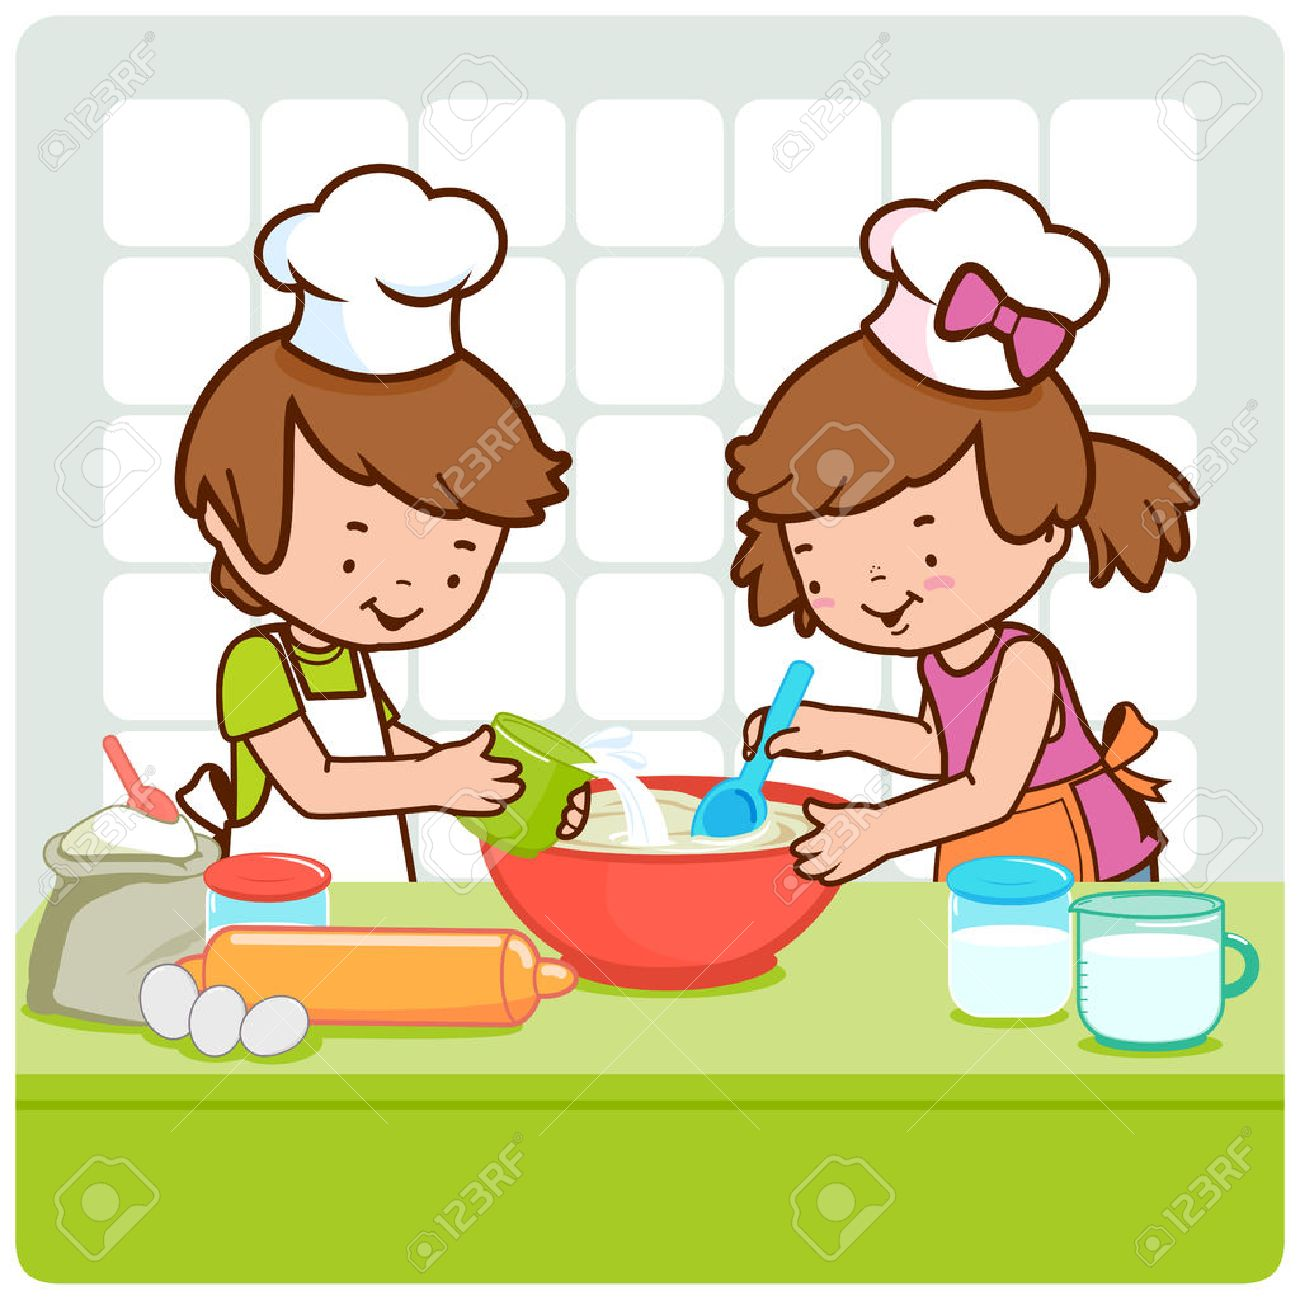 children cooking in the kitchen royalty free cliparts vectors and rh 123rf com